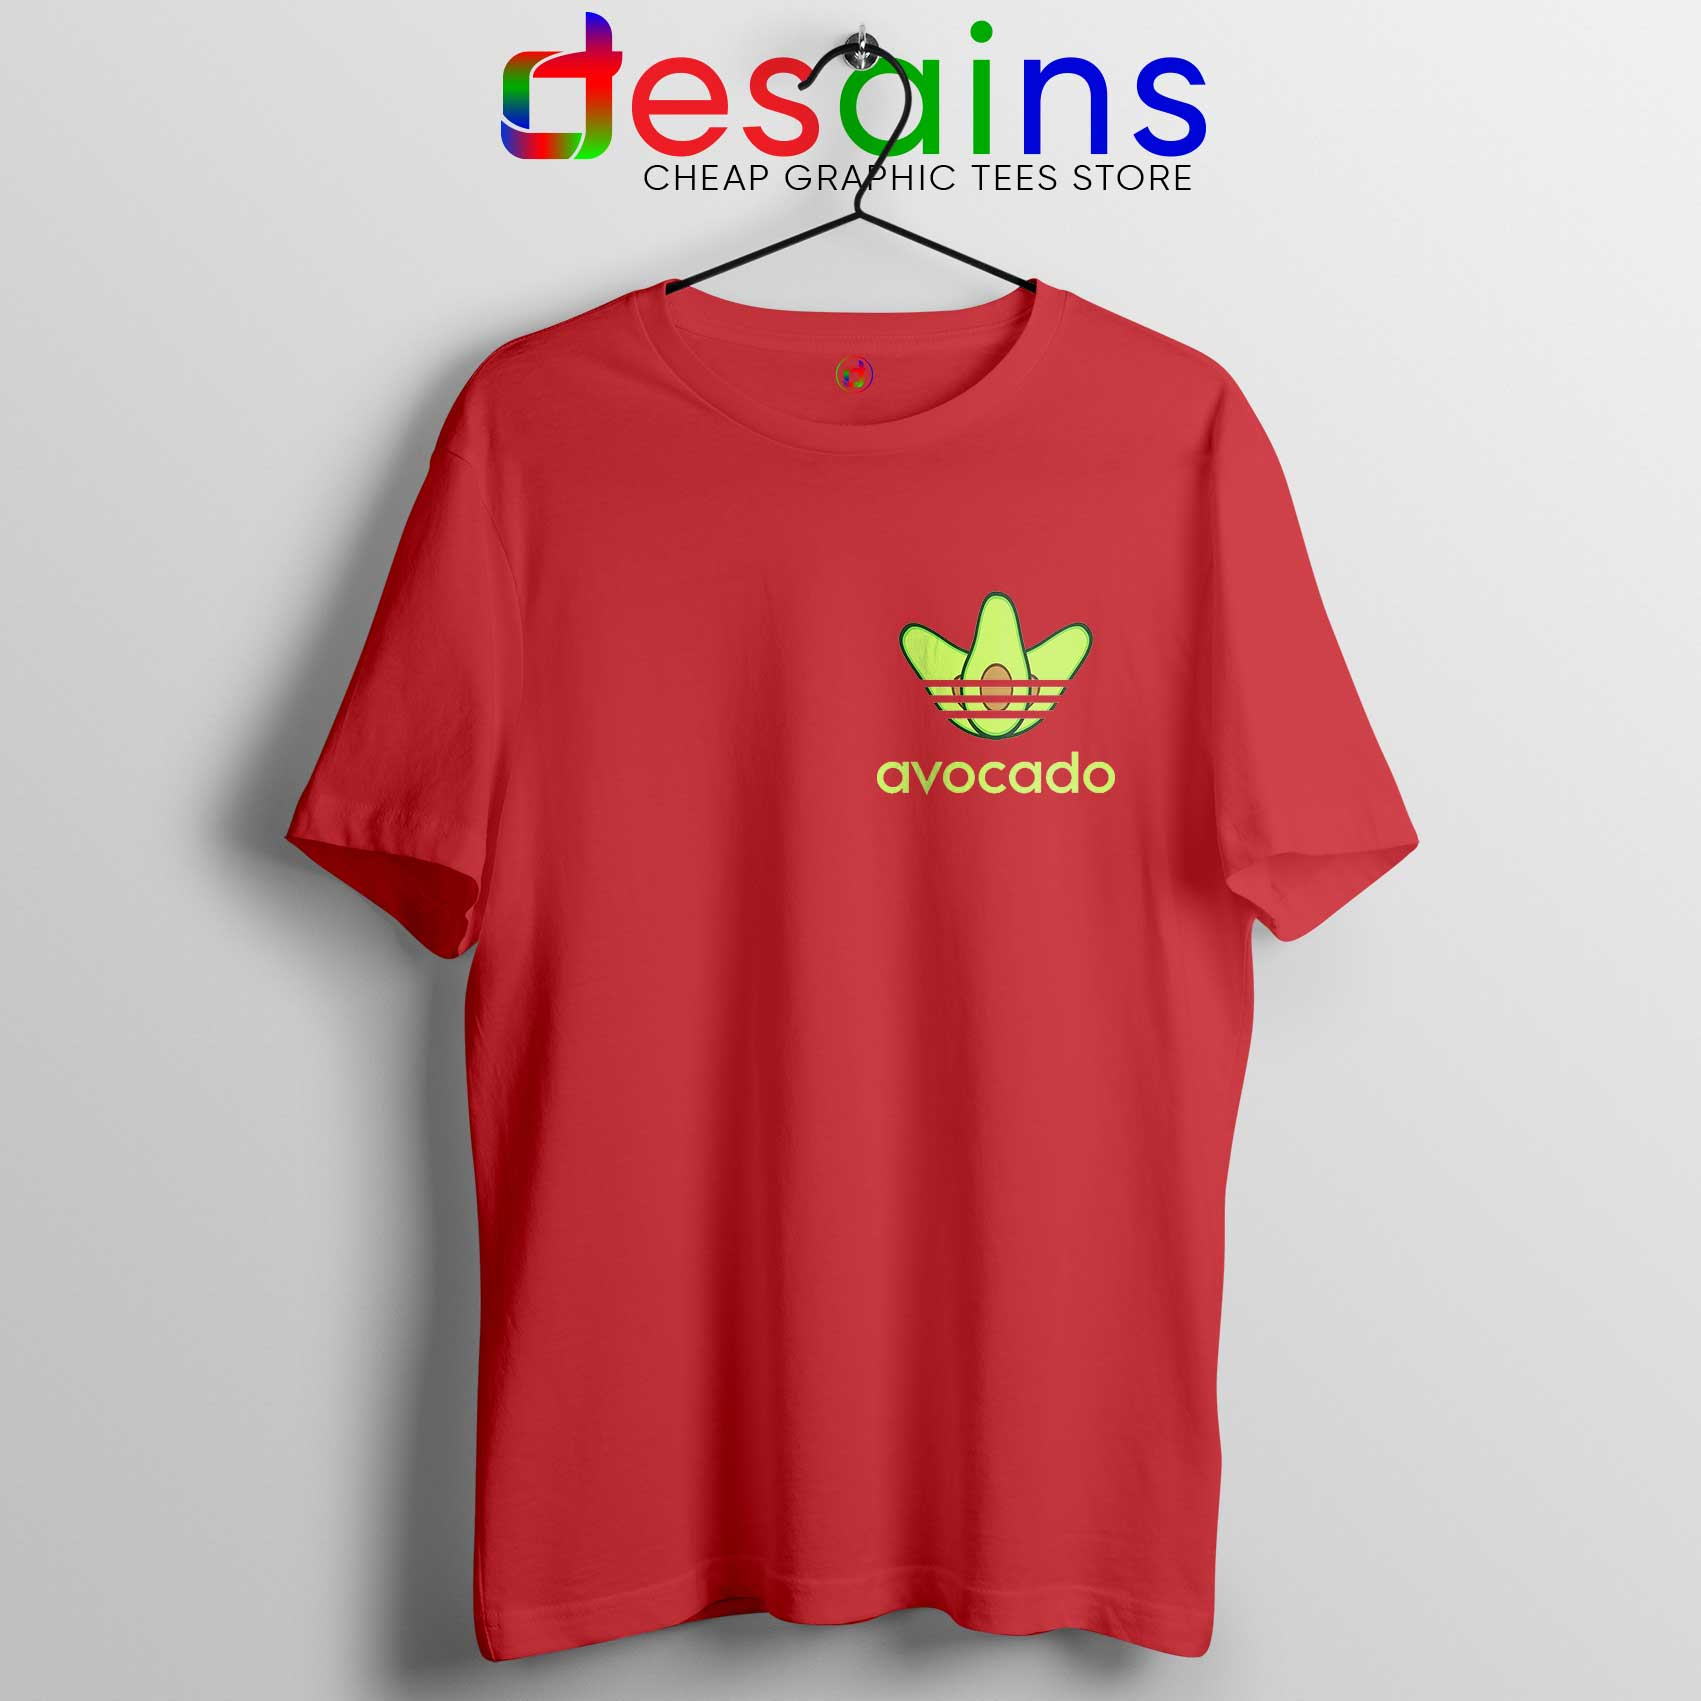 Outlet-Boutique sale bester Großhändler Avocado Adidas Pocket Style Tee Shirt Funny Avocado Size S-3XL